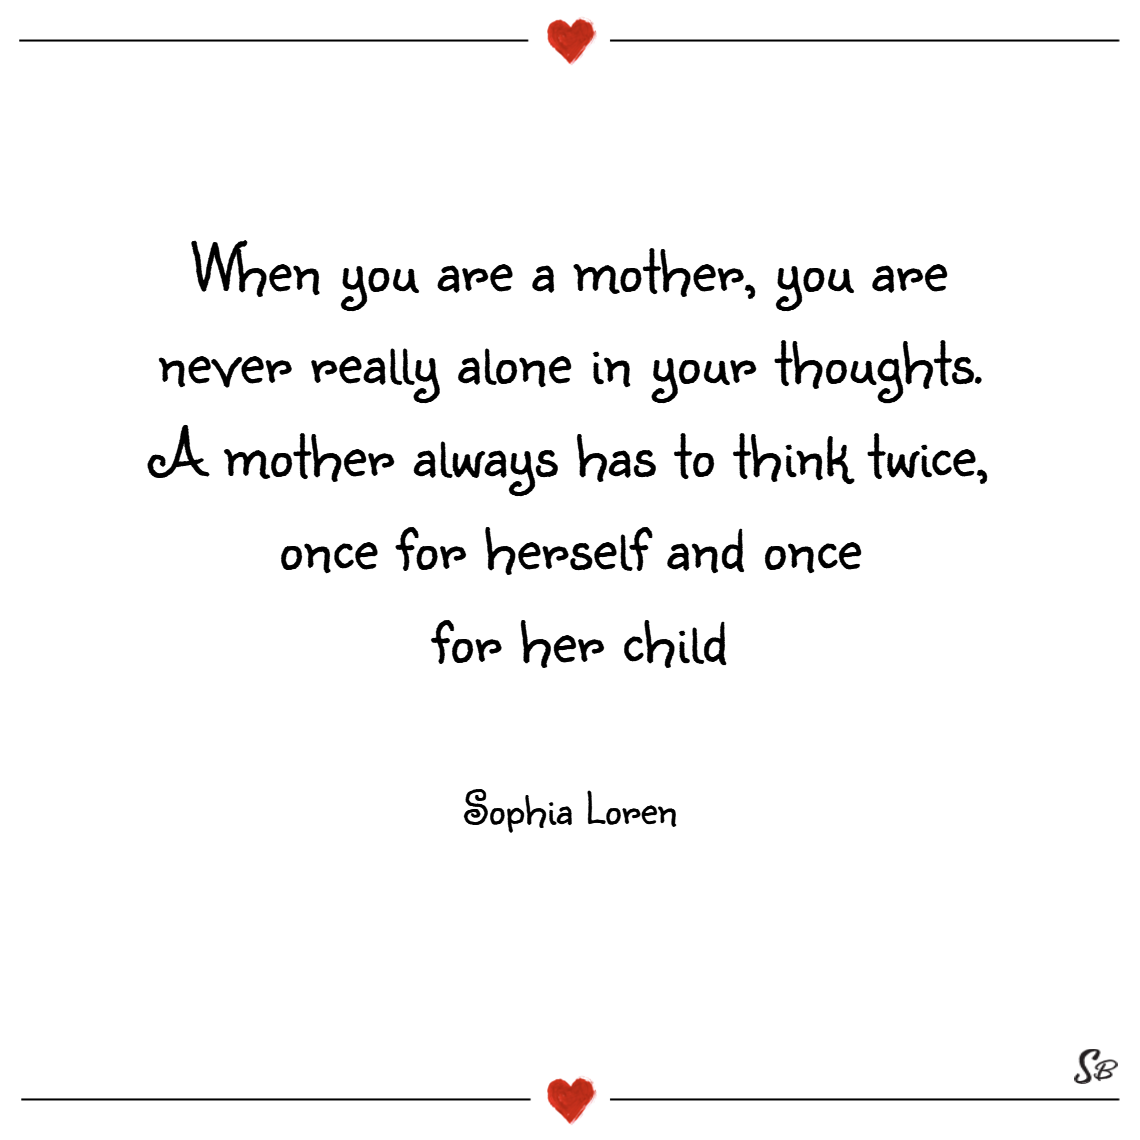 When you are a mother, you are never really alone in your thoughts. a mother always has to think twice, once for herself and once for her child. – sophia loren